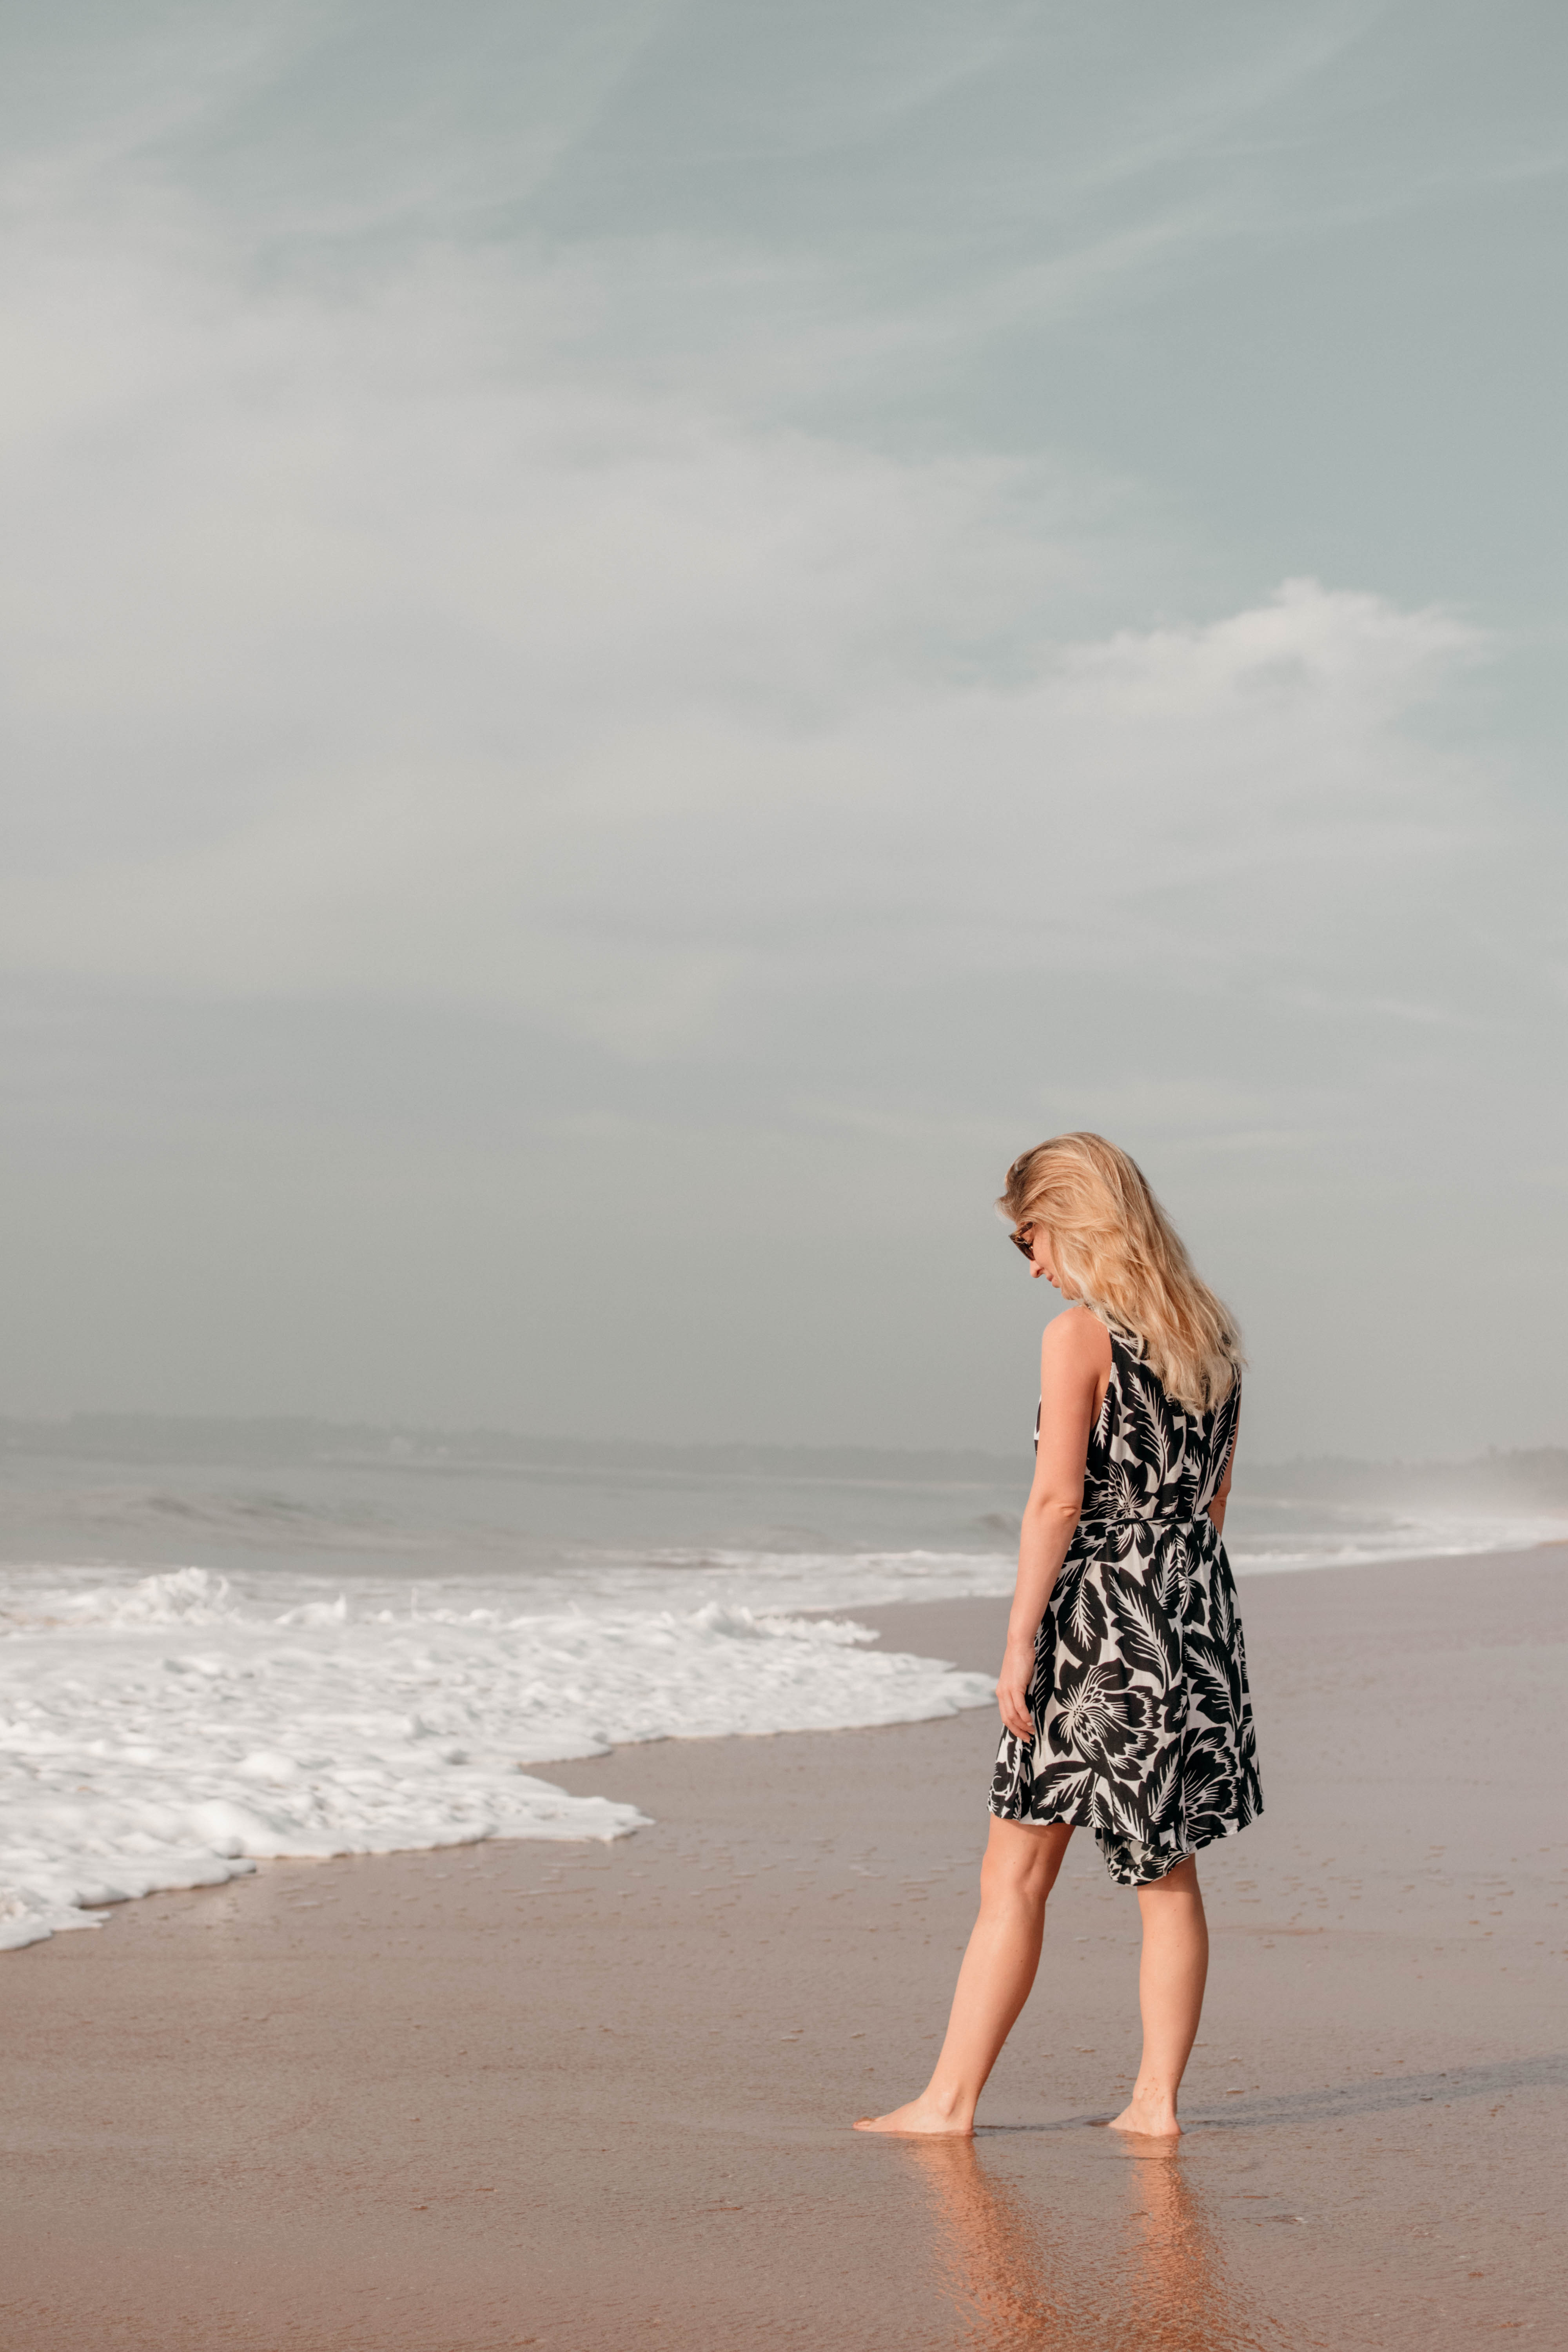 Blonde Frau in Ranna am Beach, Sri Lanka